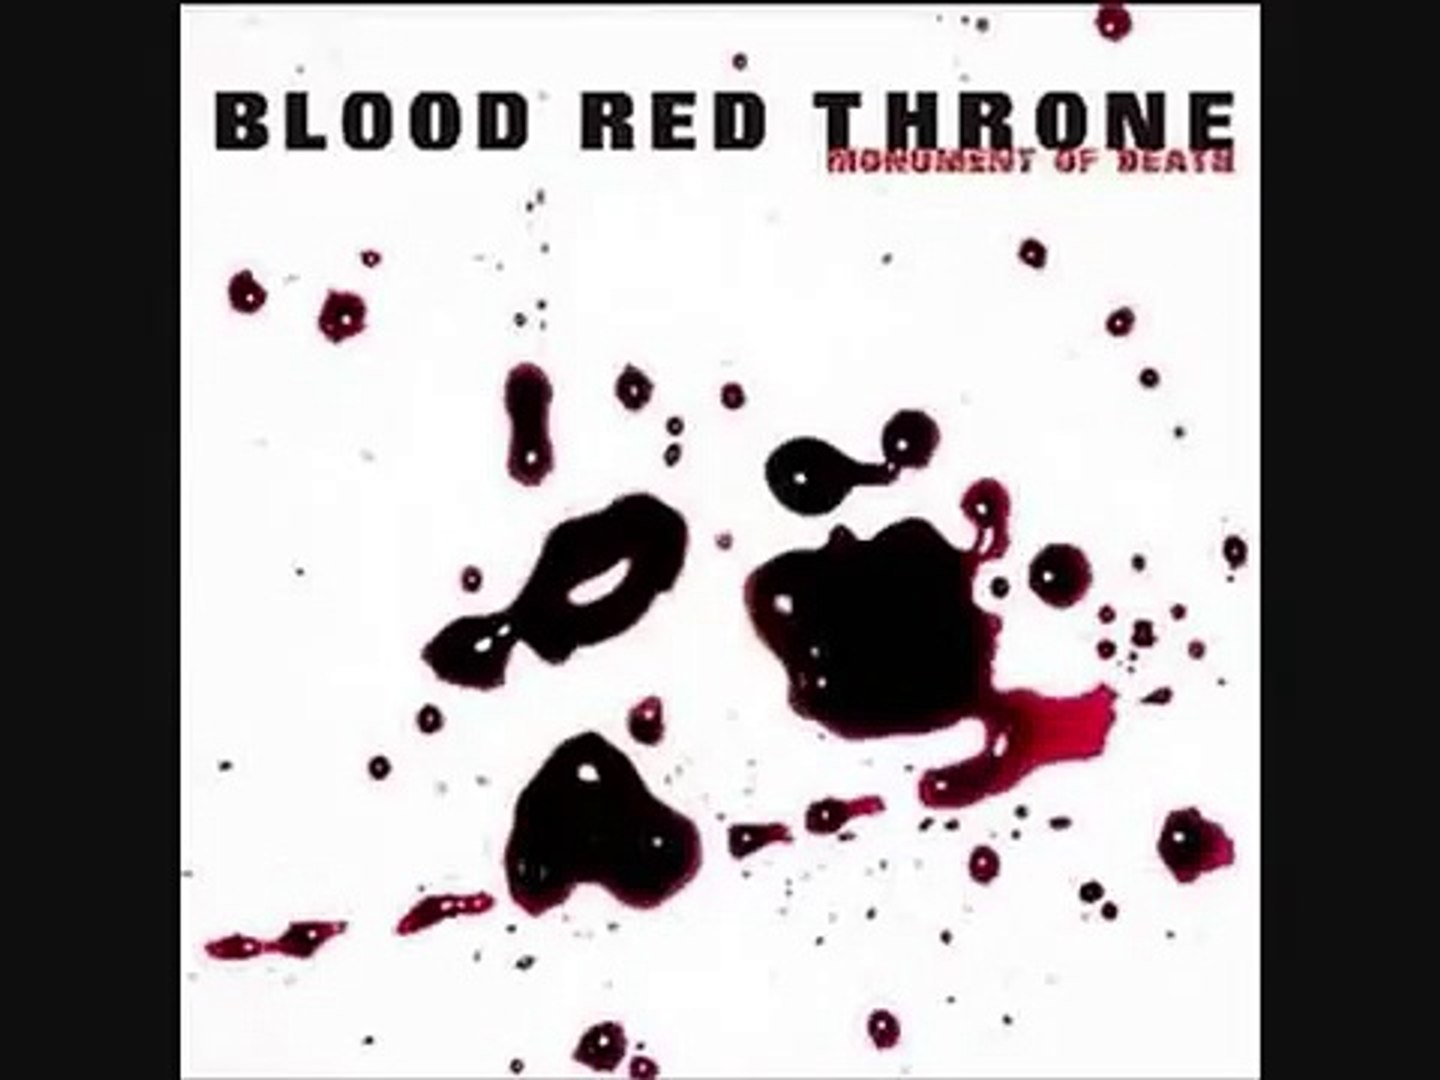 Blood red throne-Path of flesh 09